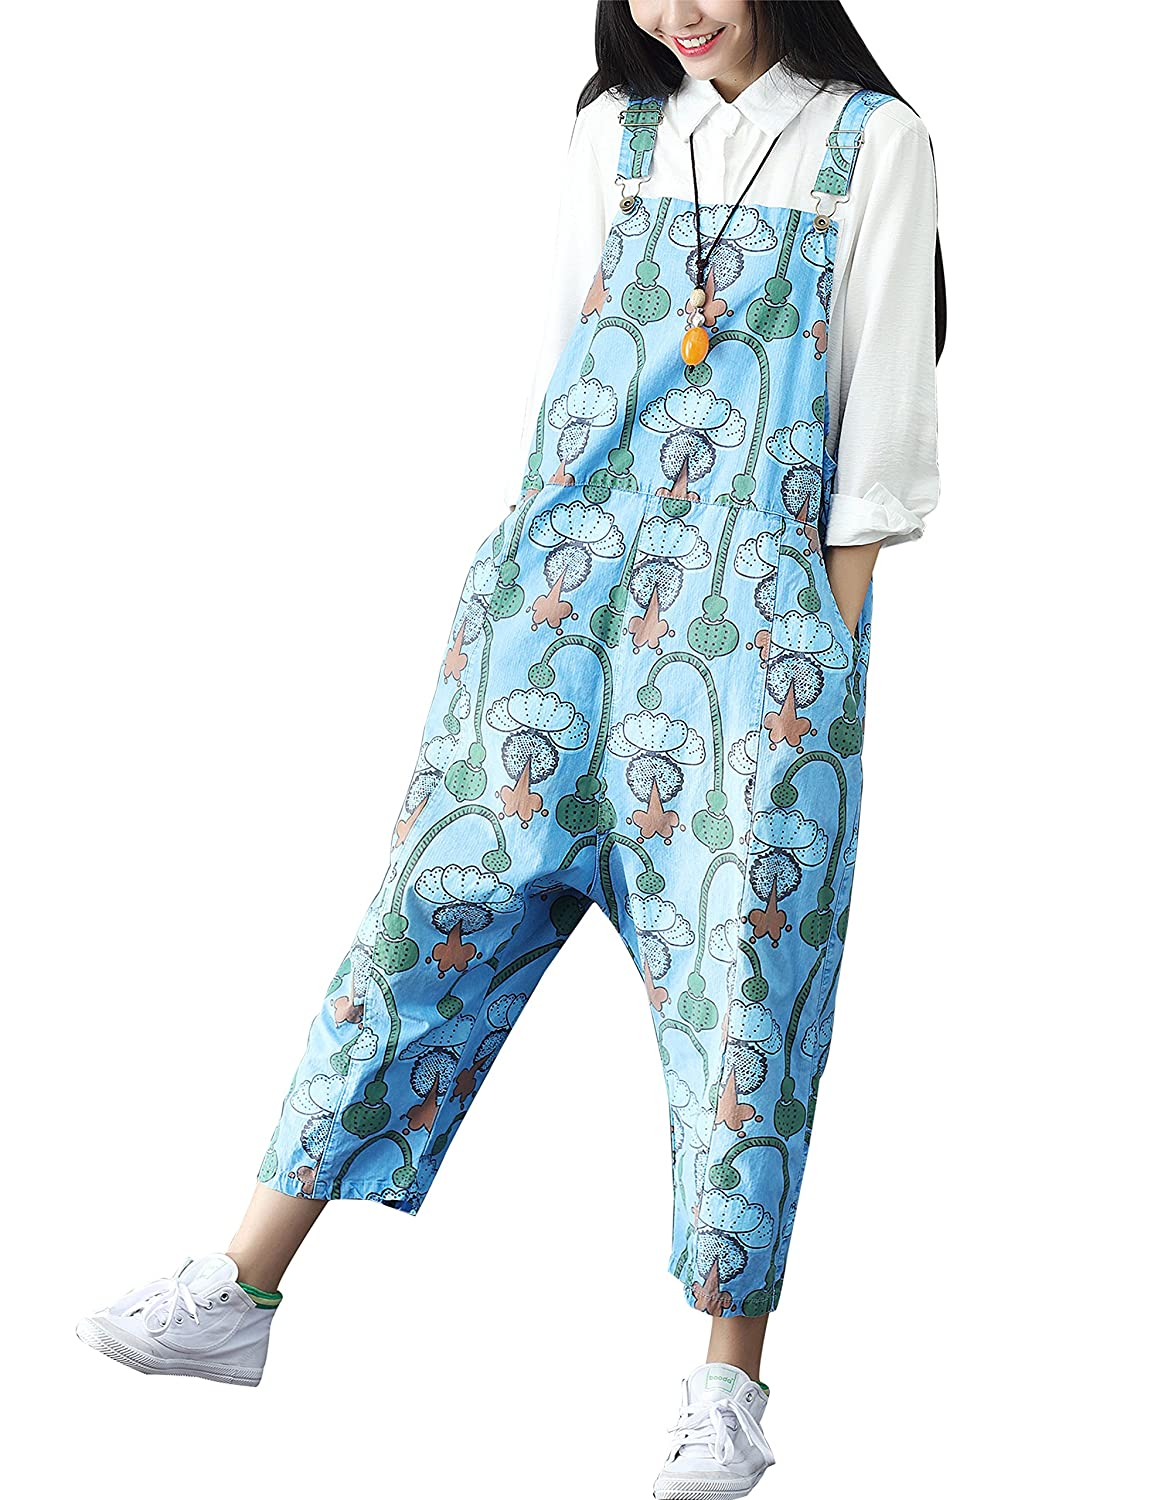 a2f7ac478e0 Yeokou Women s Loose Baggy Cotton Floral Jumpsuit Rompers Overalls Harem  Pants